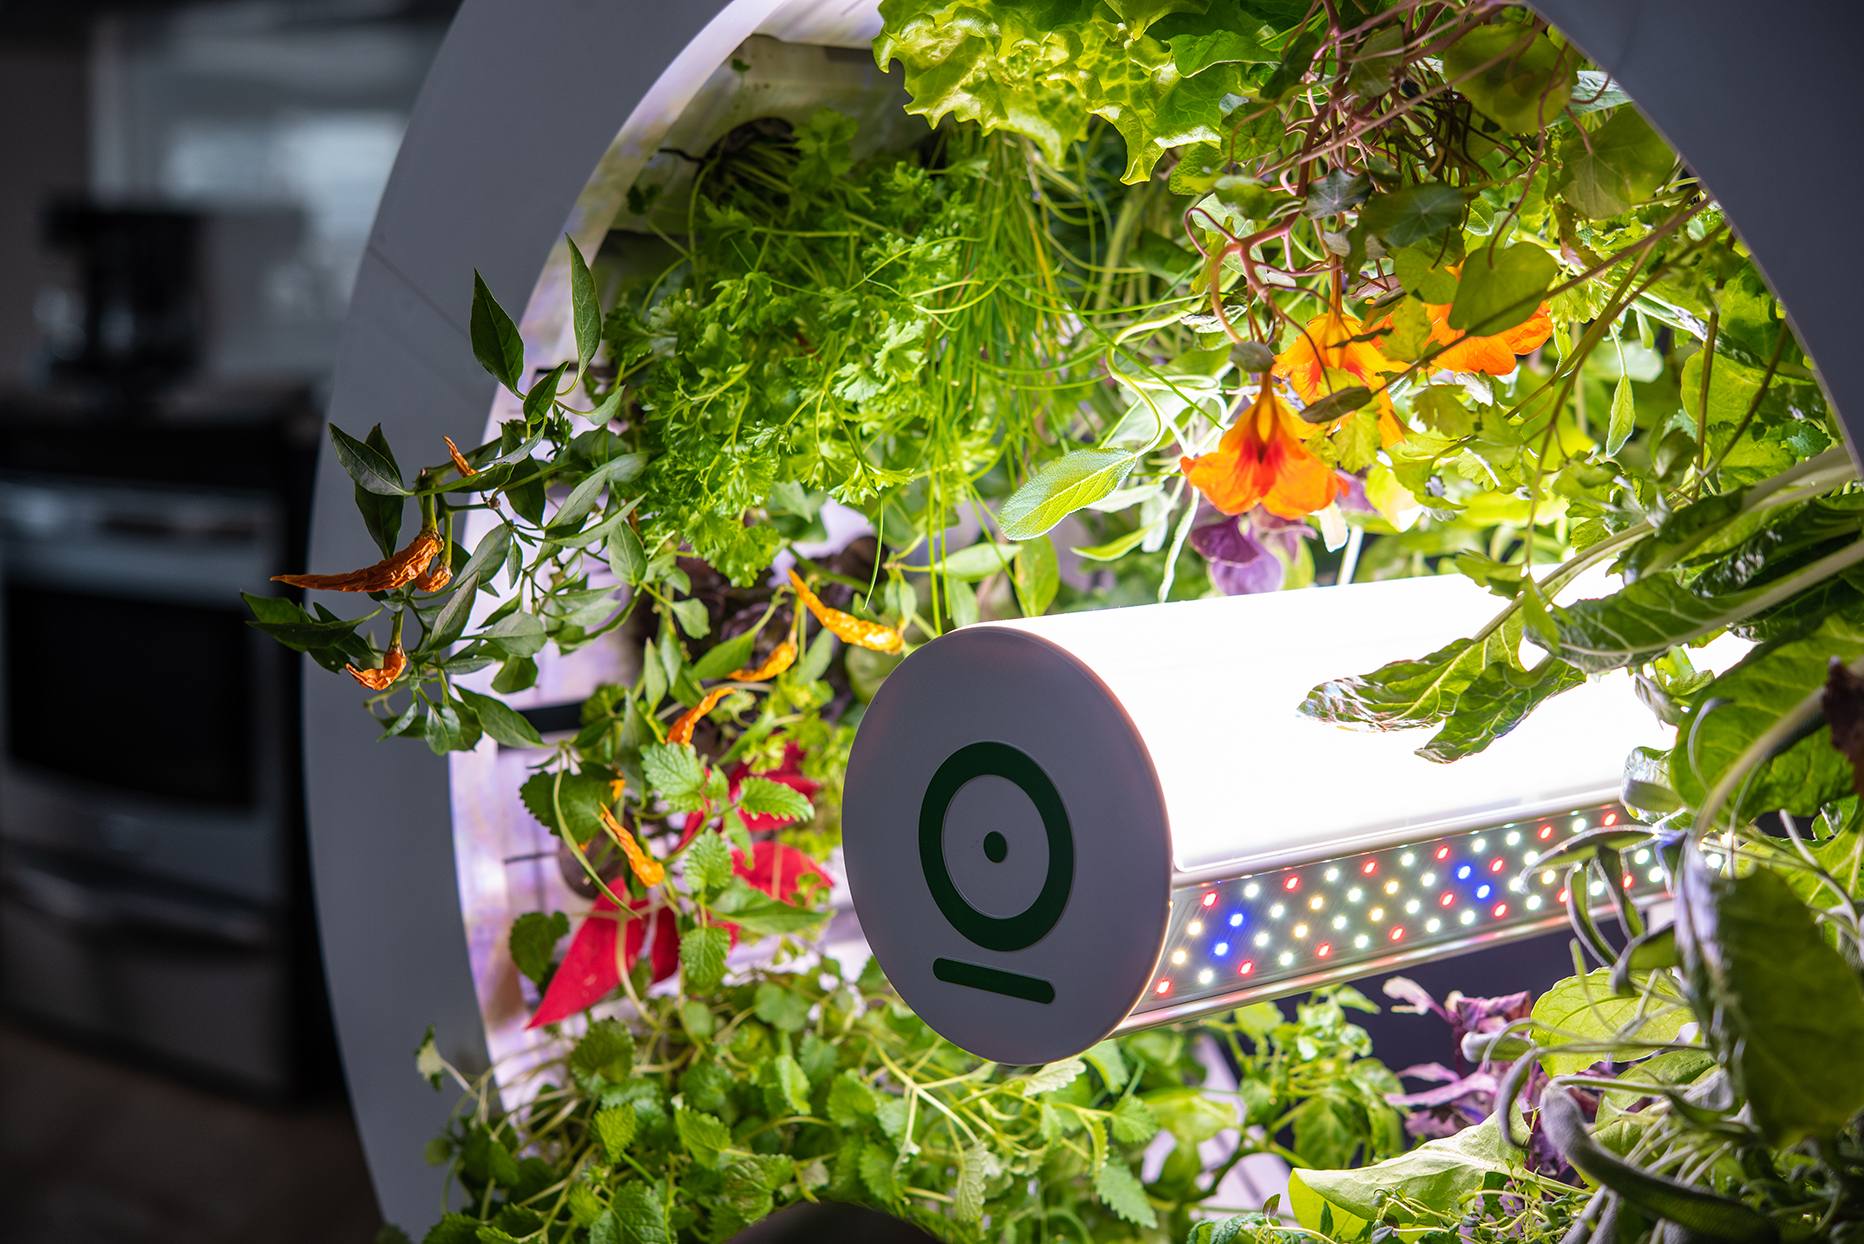 Close-up of edible plants growing in top wheel and LED cylinder at center of the wheel